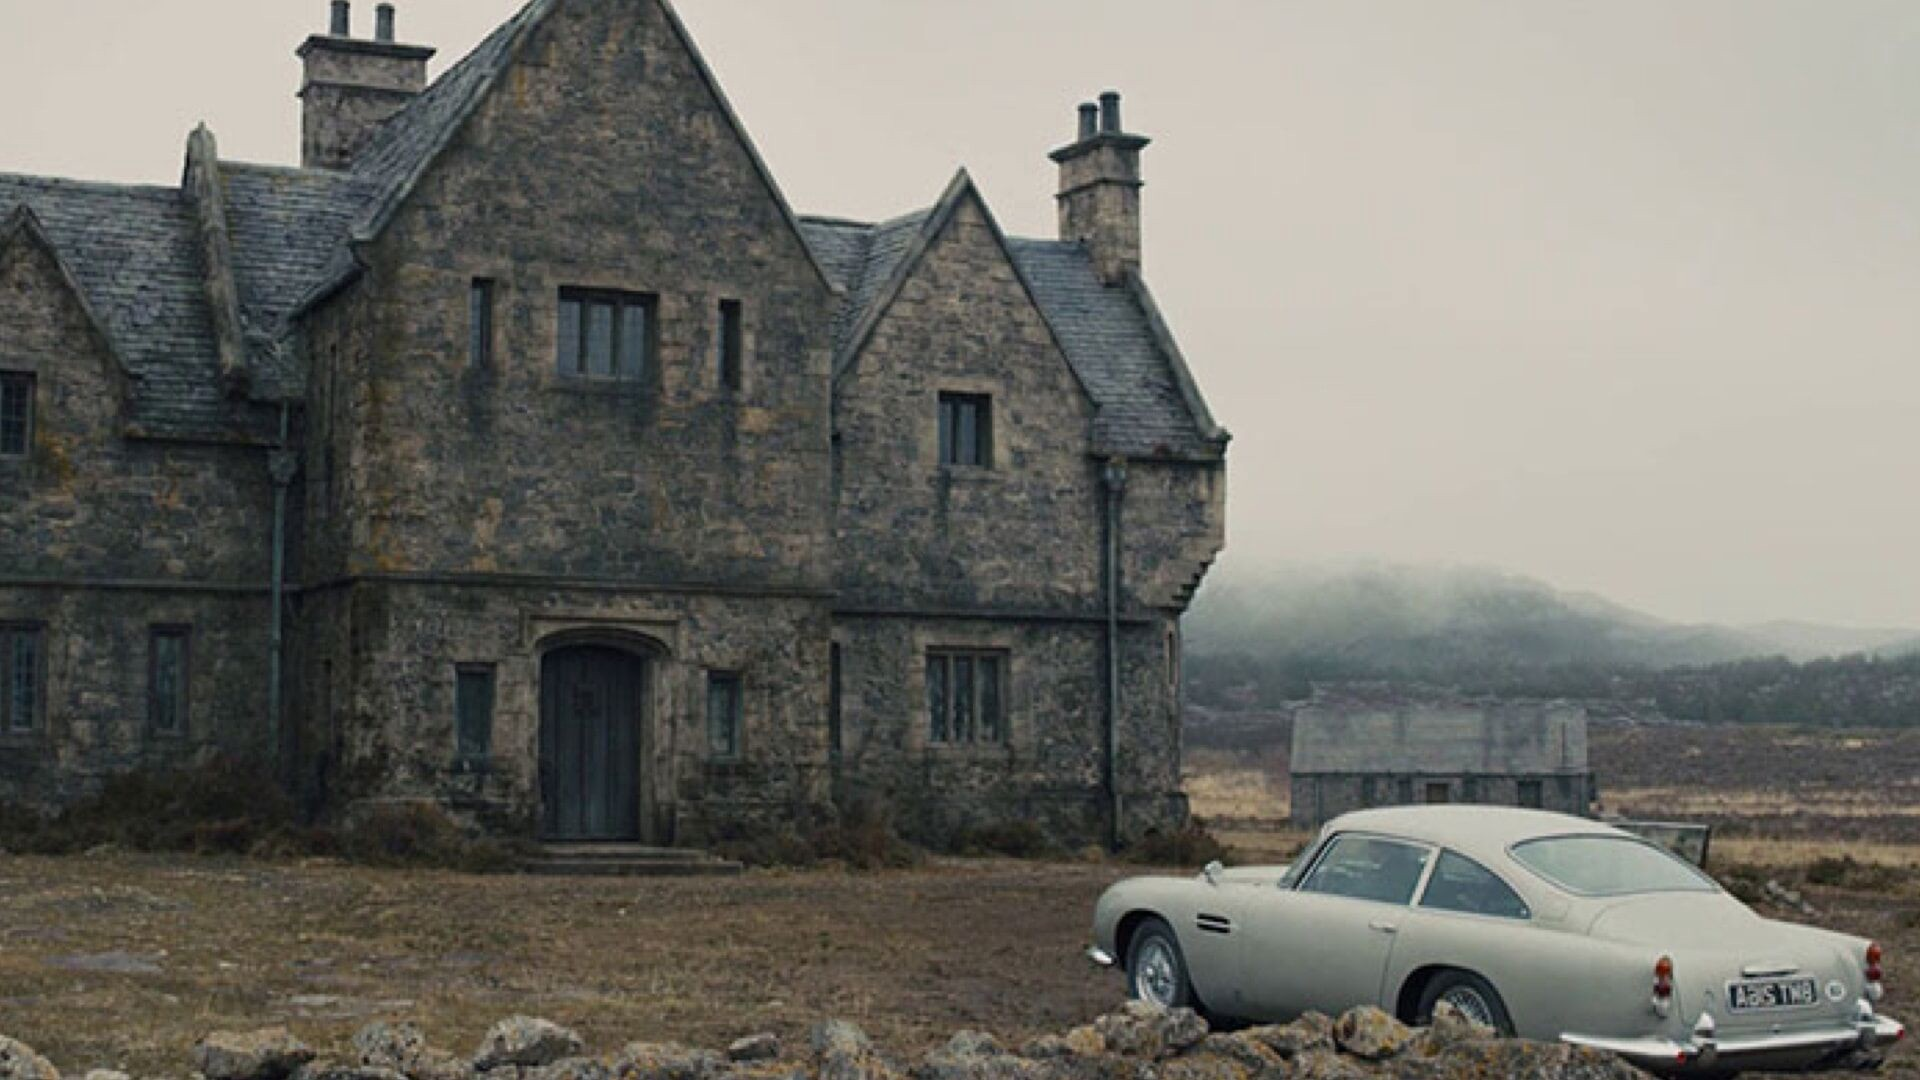 Establishing shot for the finale to the film, Skyfall. The classic Bond car sits in the foreground to a misty stone cottage.